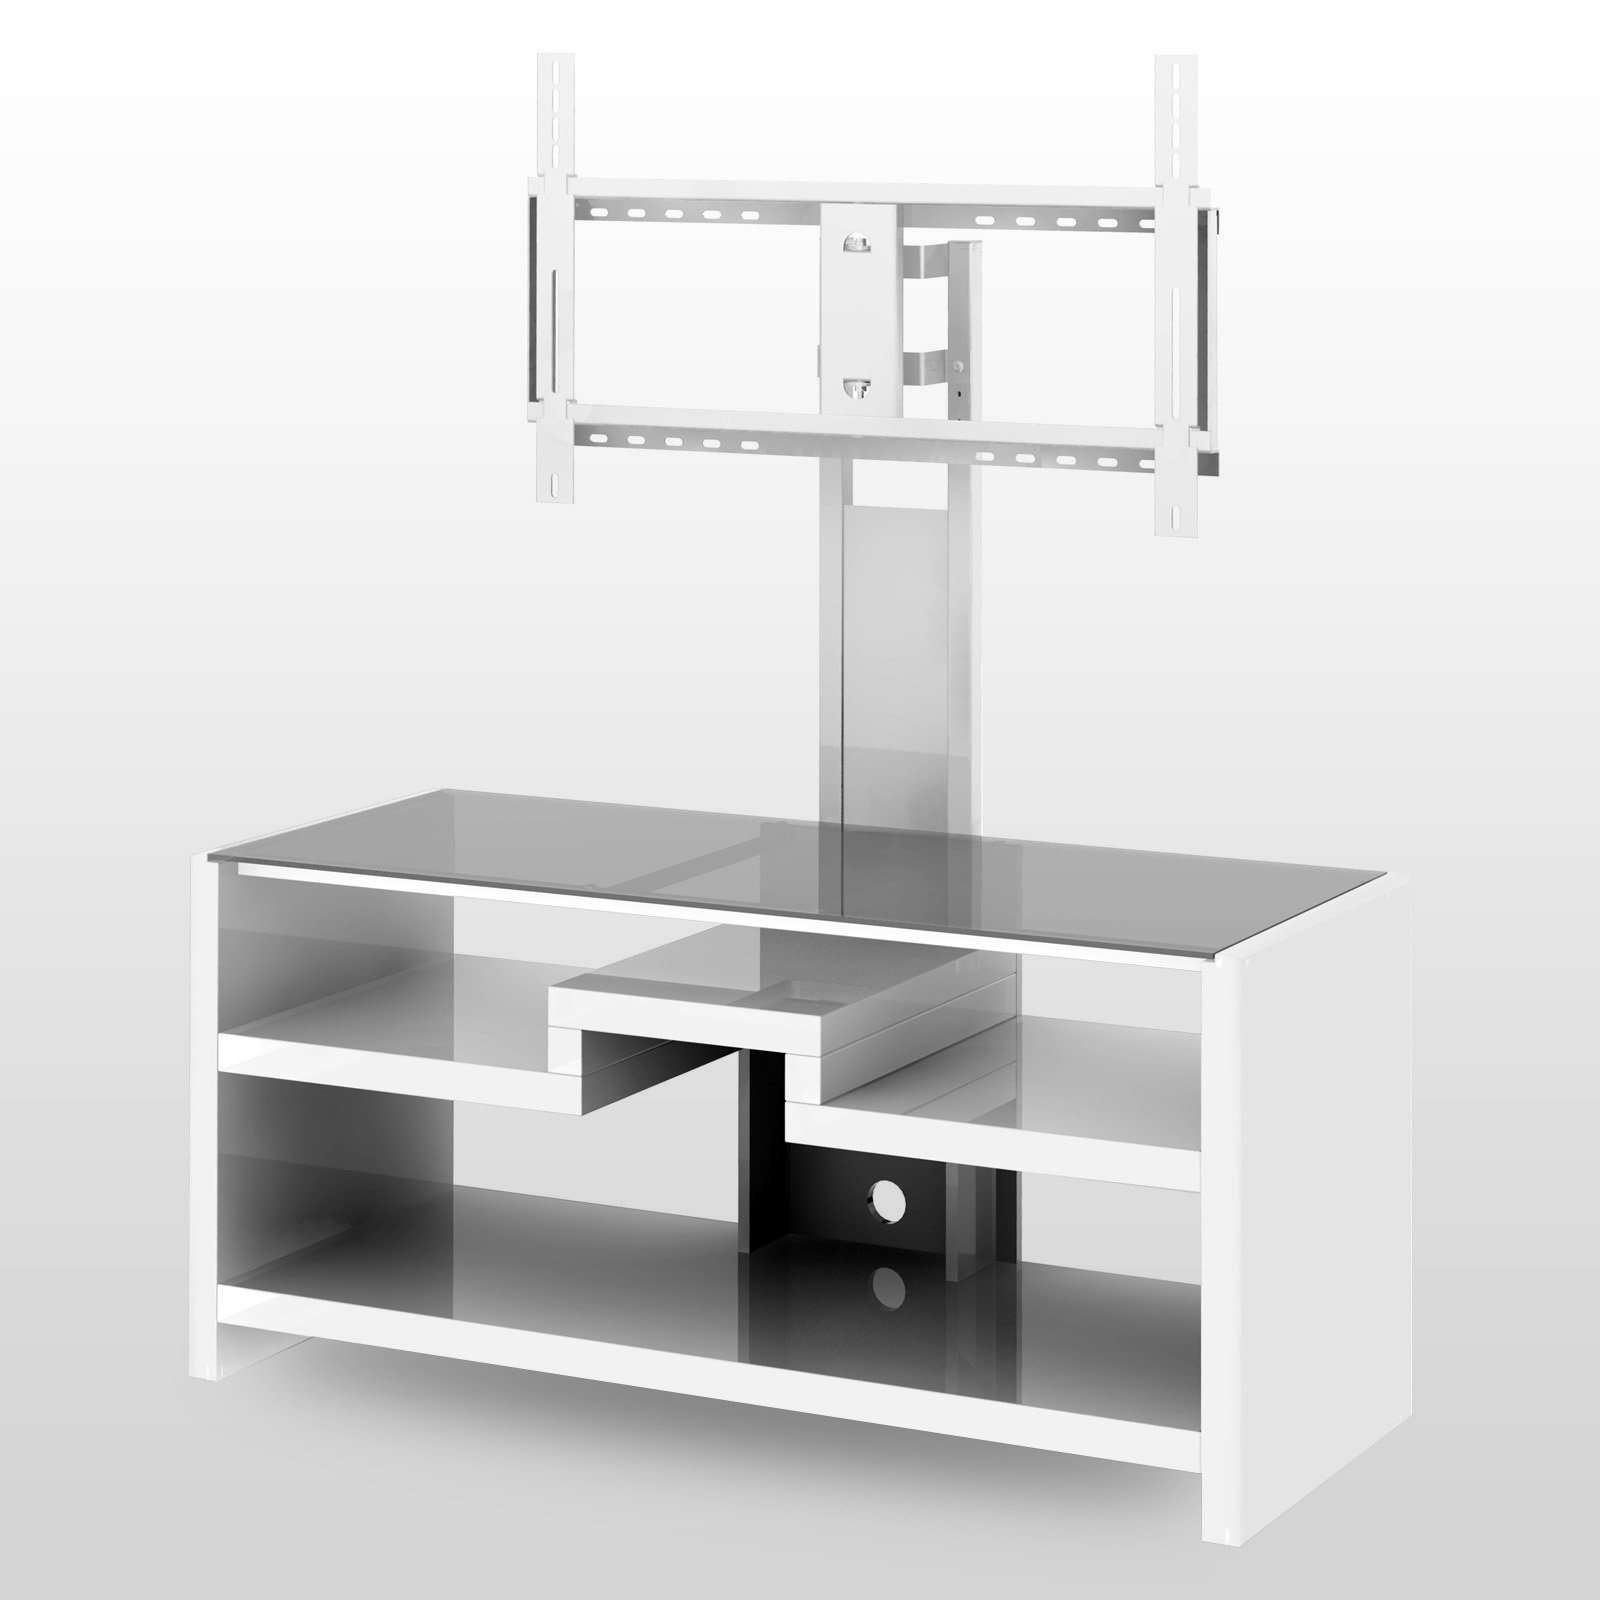 Tv Stands Furnitureallv Stand With Mount Wall Mounted Shelf Tall With Cheap Tall Tv Stands For Flat Screens (View 18 of 20)